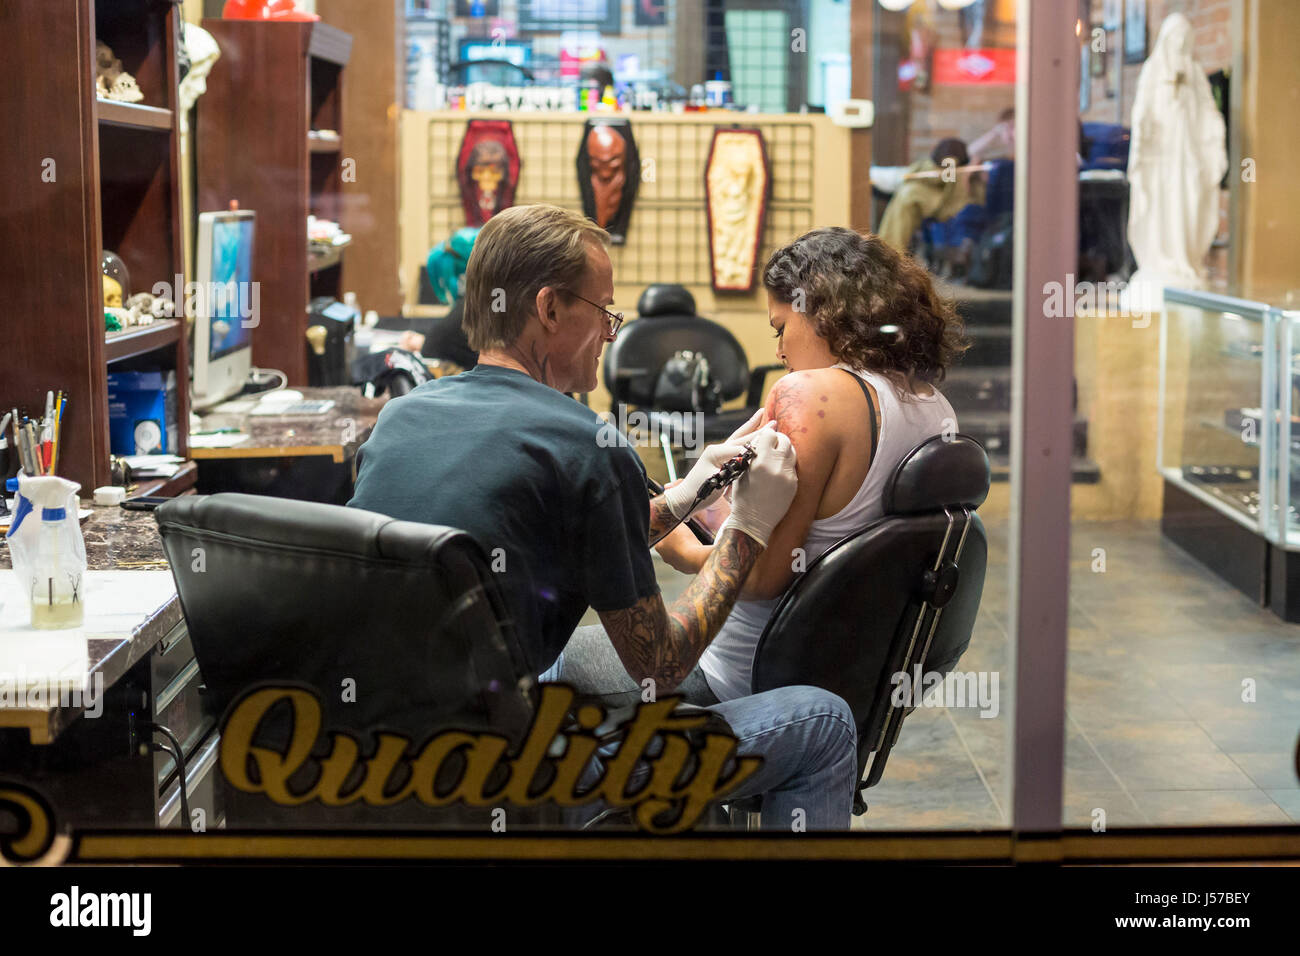 Tucson, Arizona - A tattoo artist at work in a shop on Fourth Avenue. - Stock Image